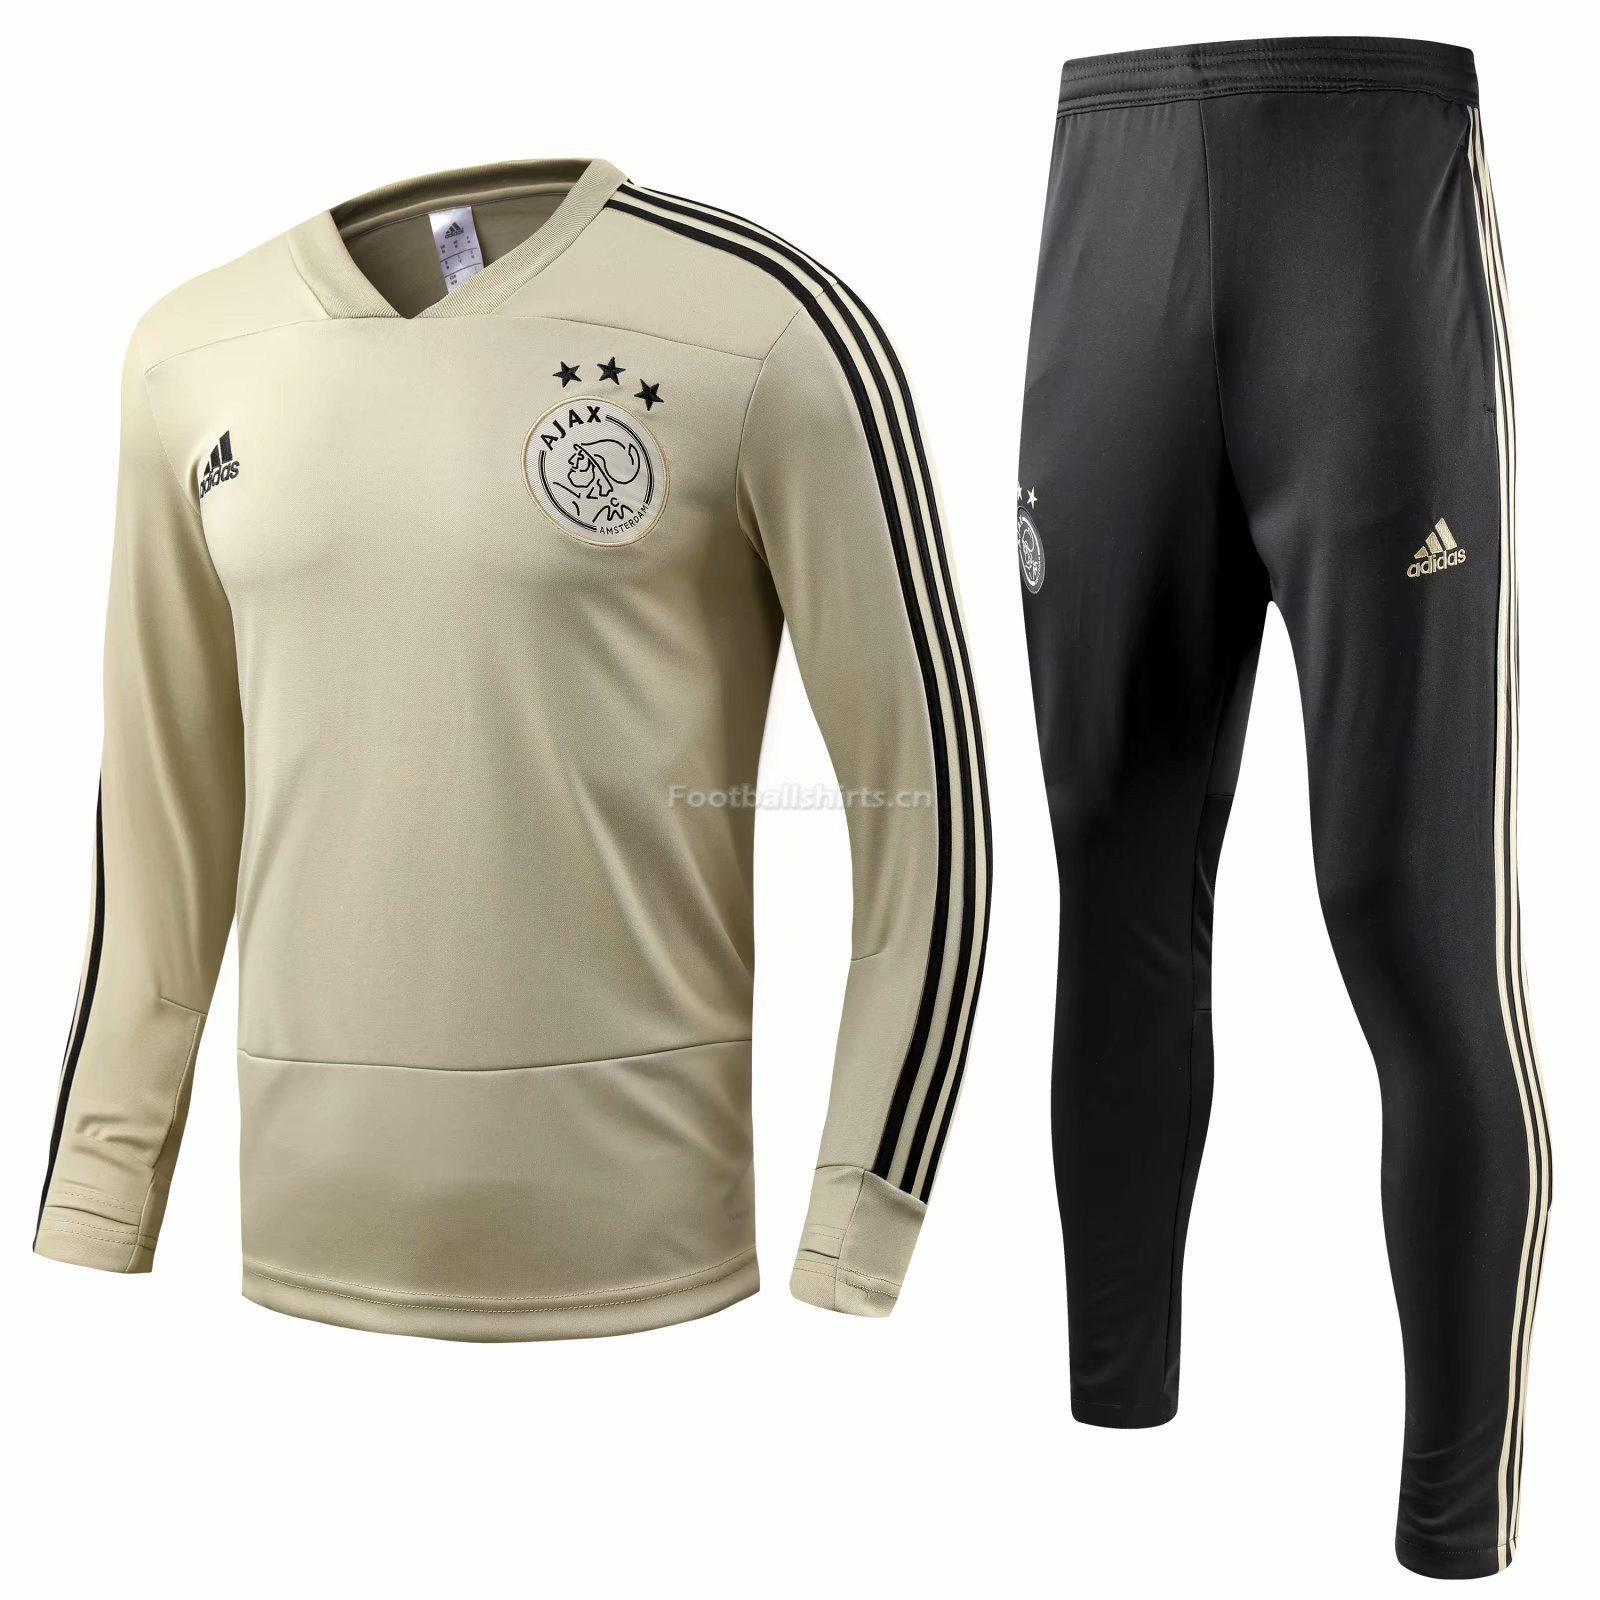 Ajax Apricot Training Suit (Shirt+Trouser) 2018/19